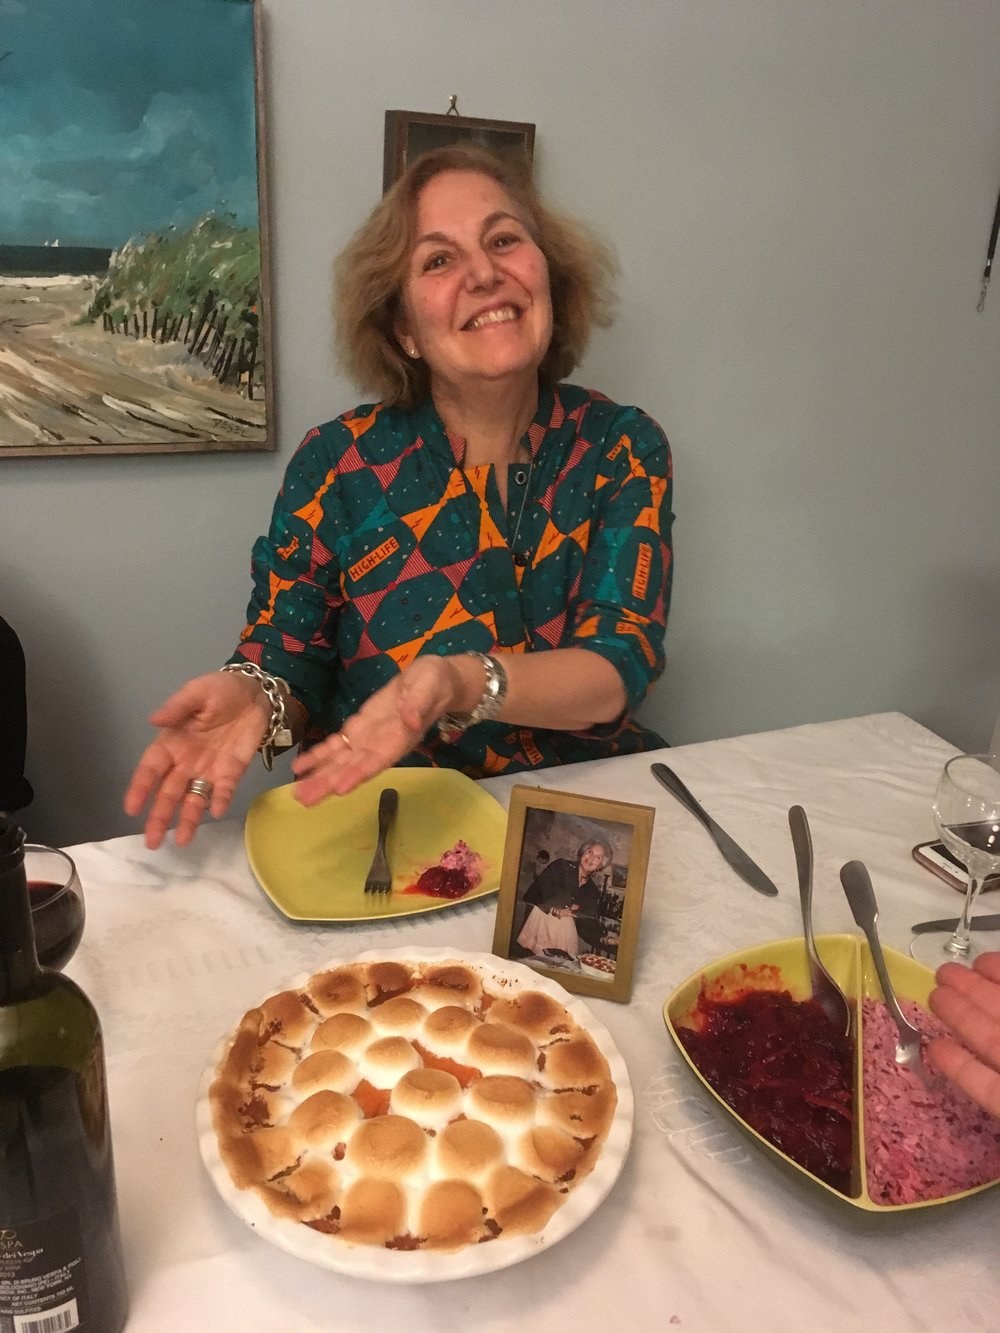 Carol presents the pie, 2017